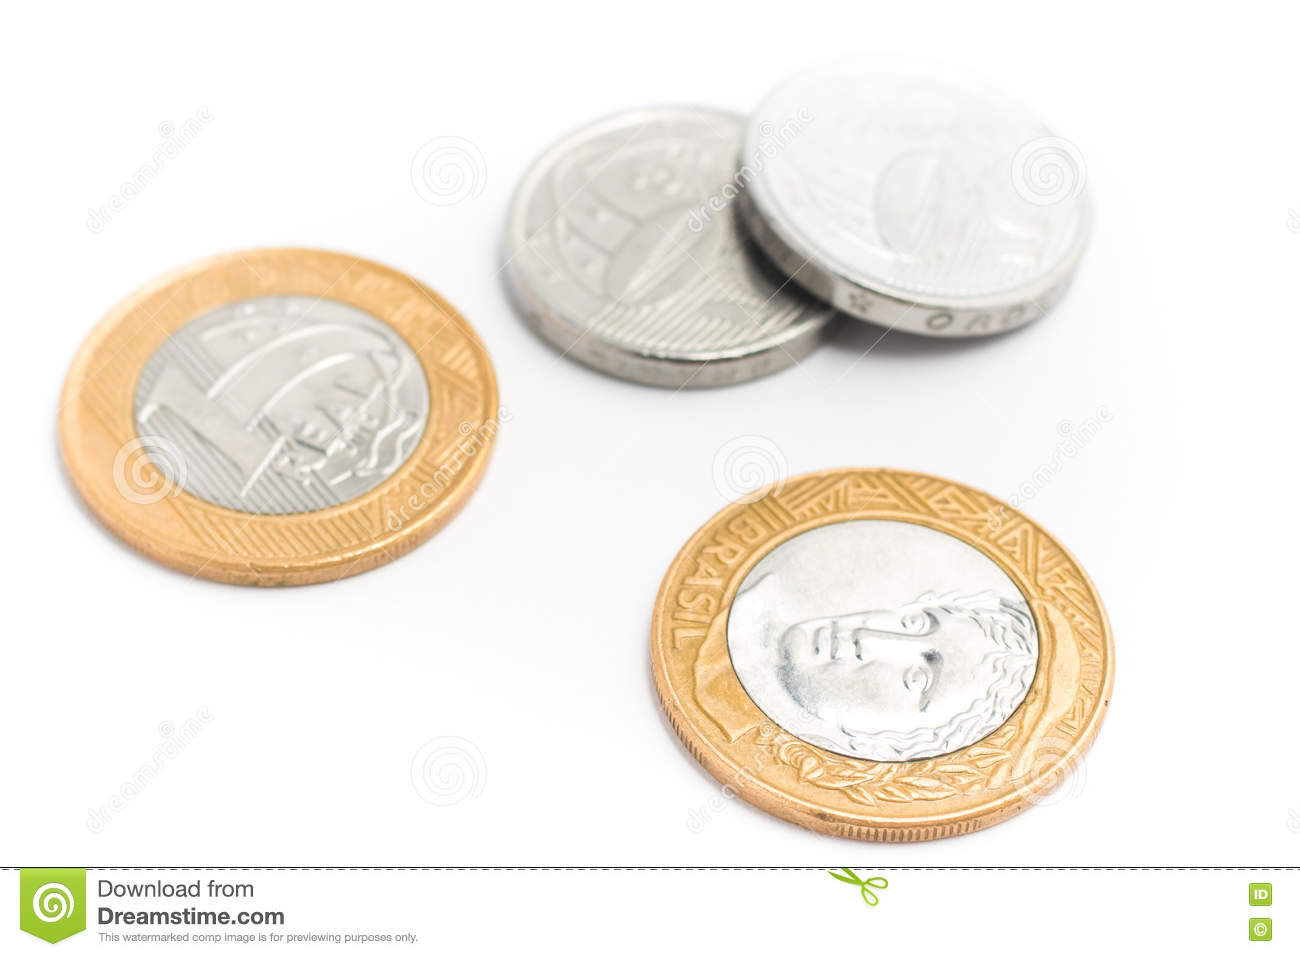 Brazilian Money. Coins of One Real and Fifty cents on white back